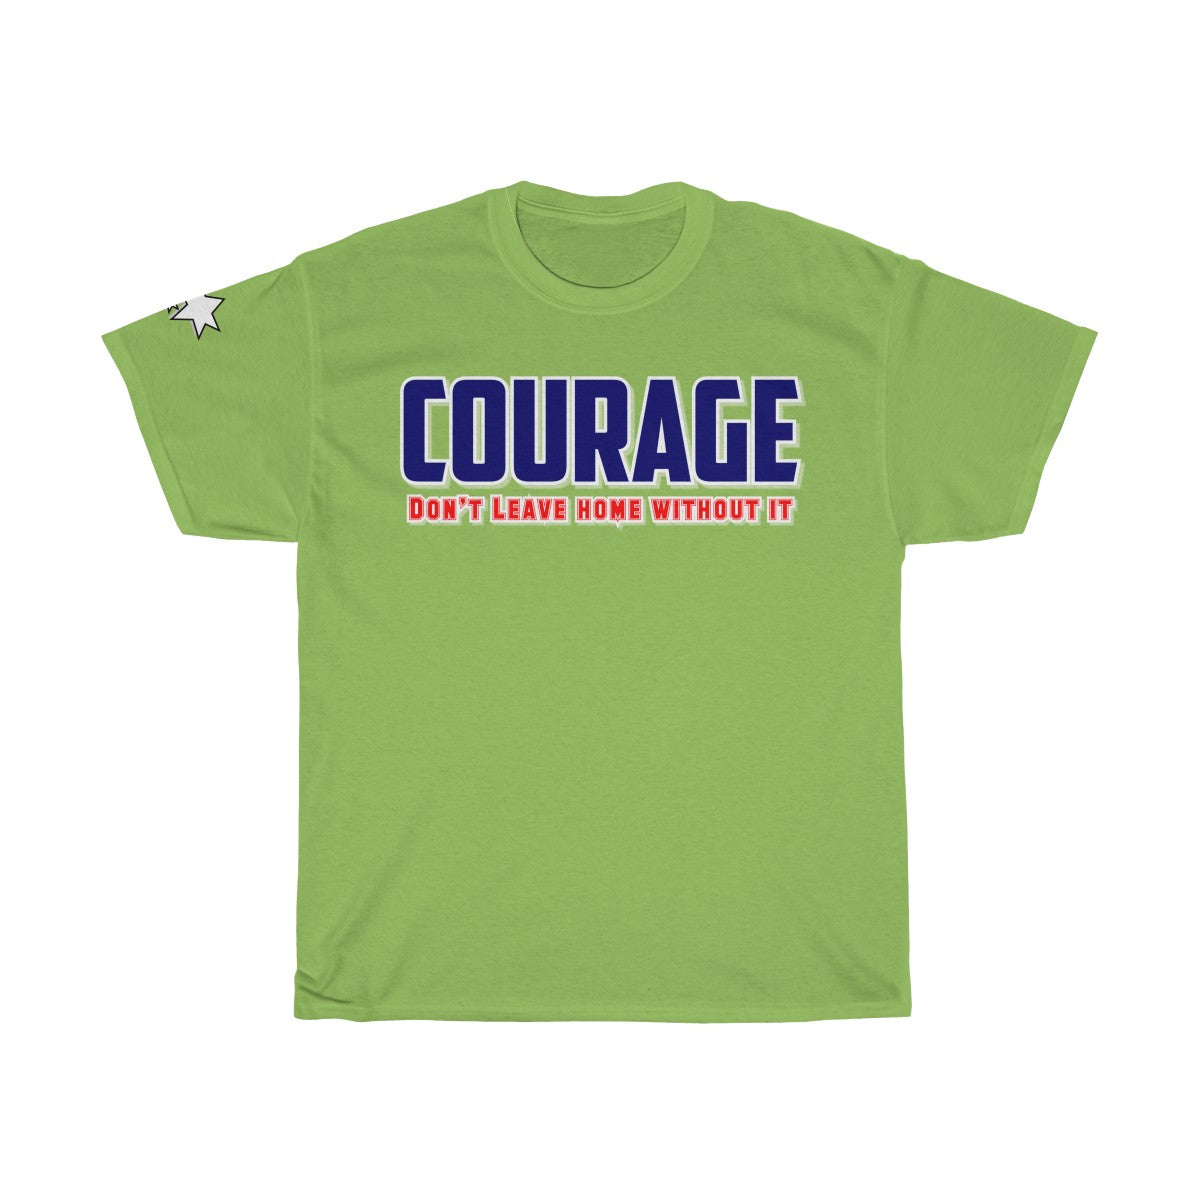 Unisex Heavy Cotton Tee - Courage II